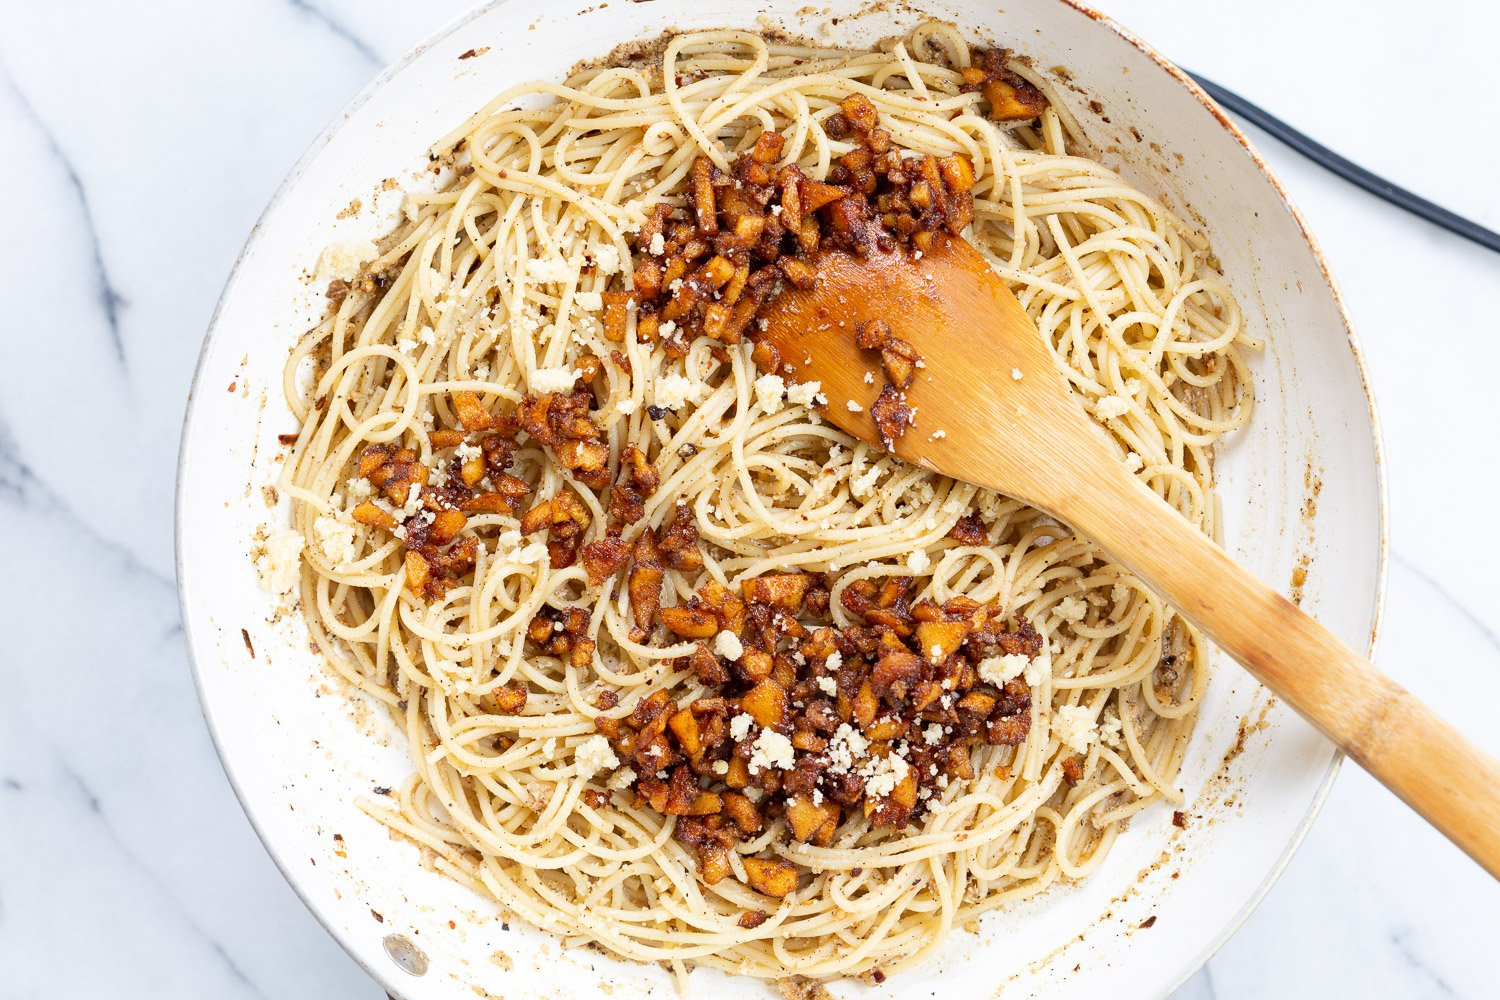 Our Vegan Cacio e Pepe with Smoky Balsamic Chickpea Tofu Bits in a white skillet